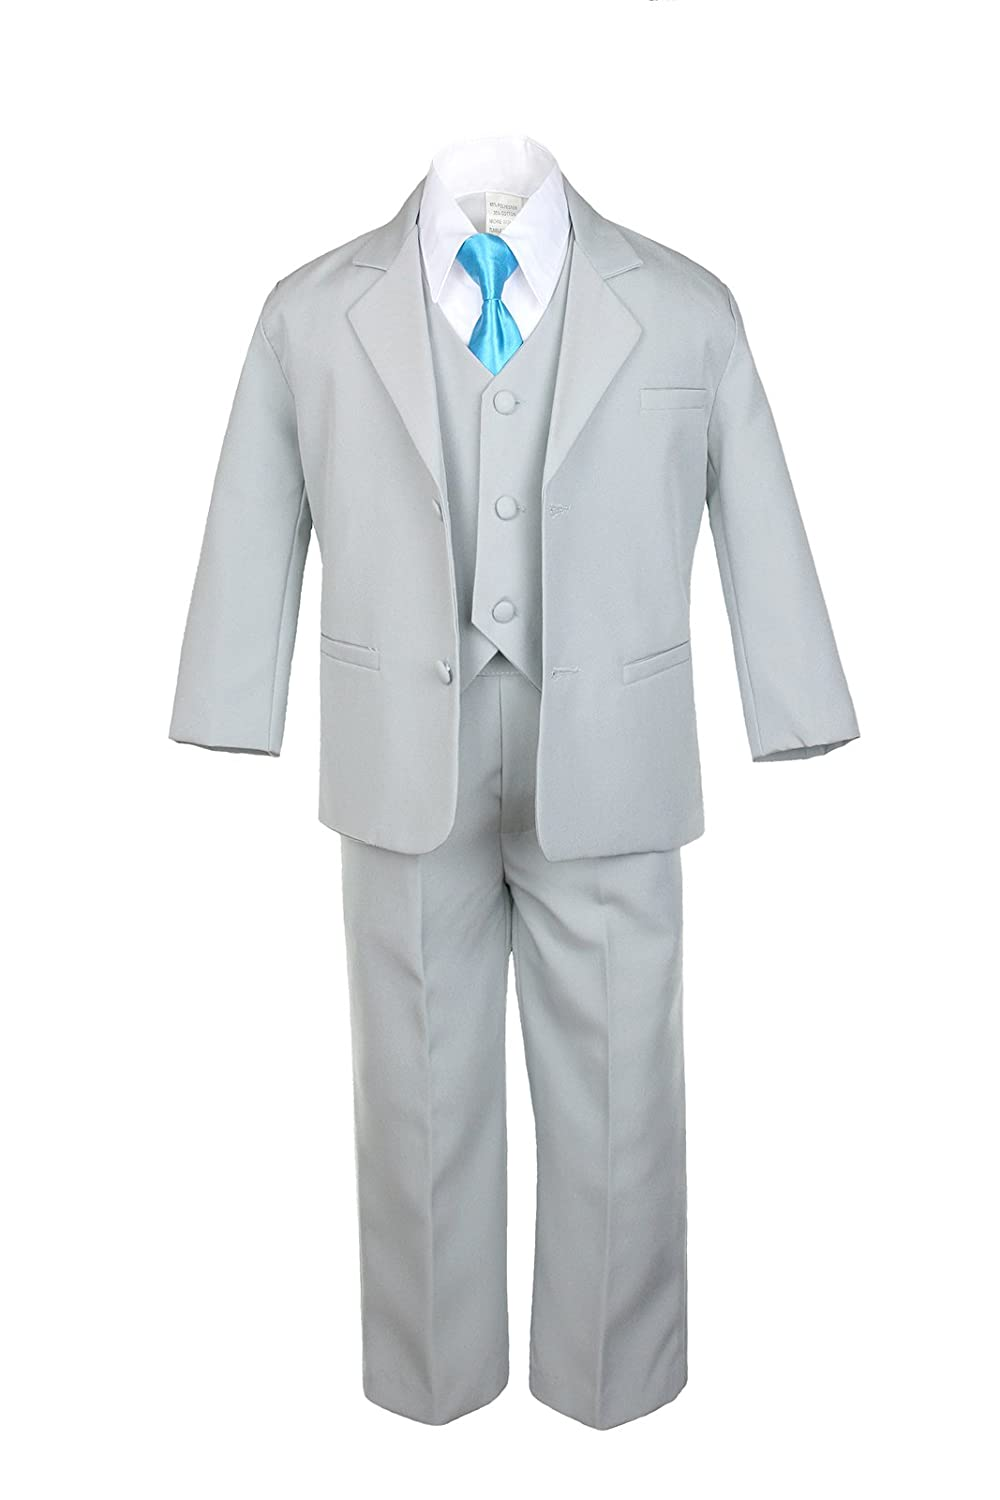 Unotux 6pc Boy Gray Suits with Satin Turquoise Blue Necktie Outfits Baby to Teen